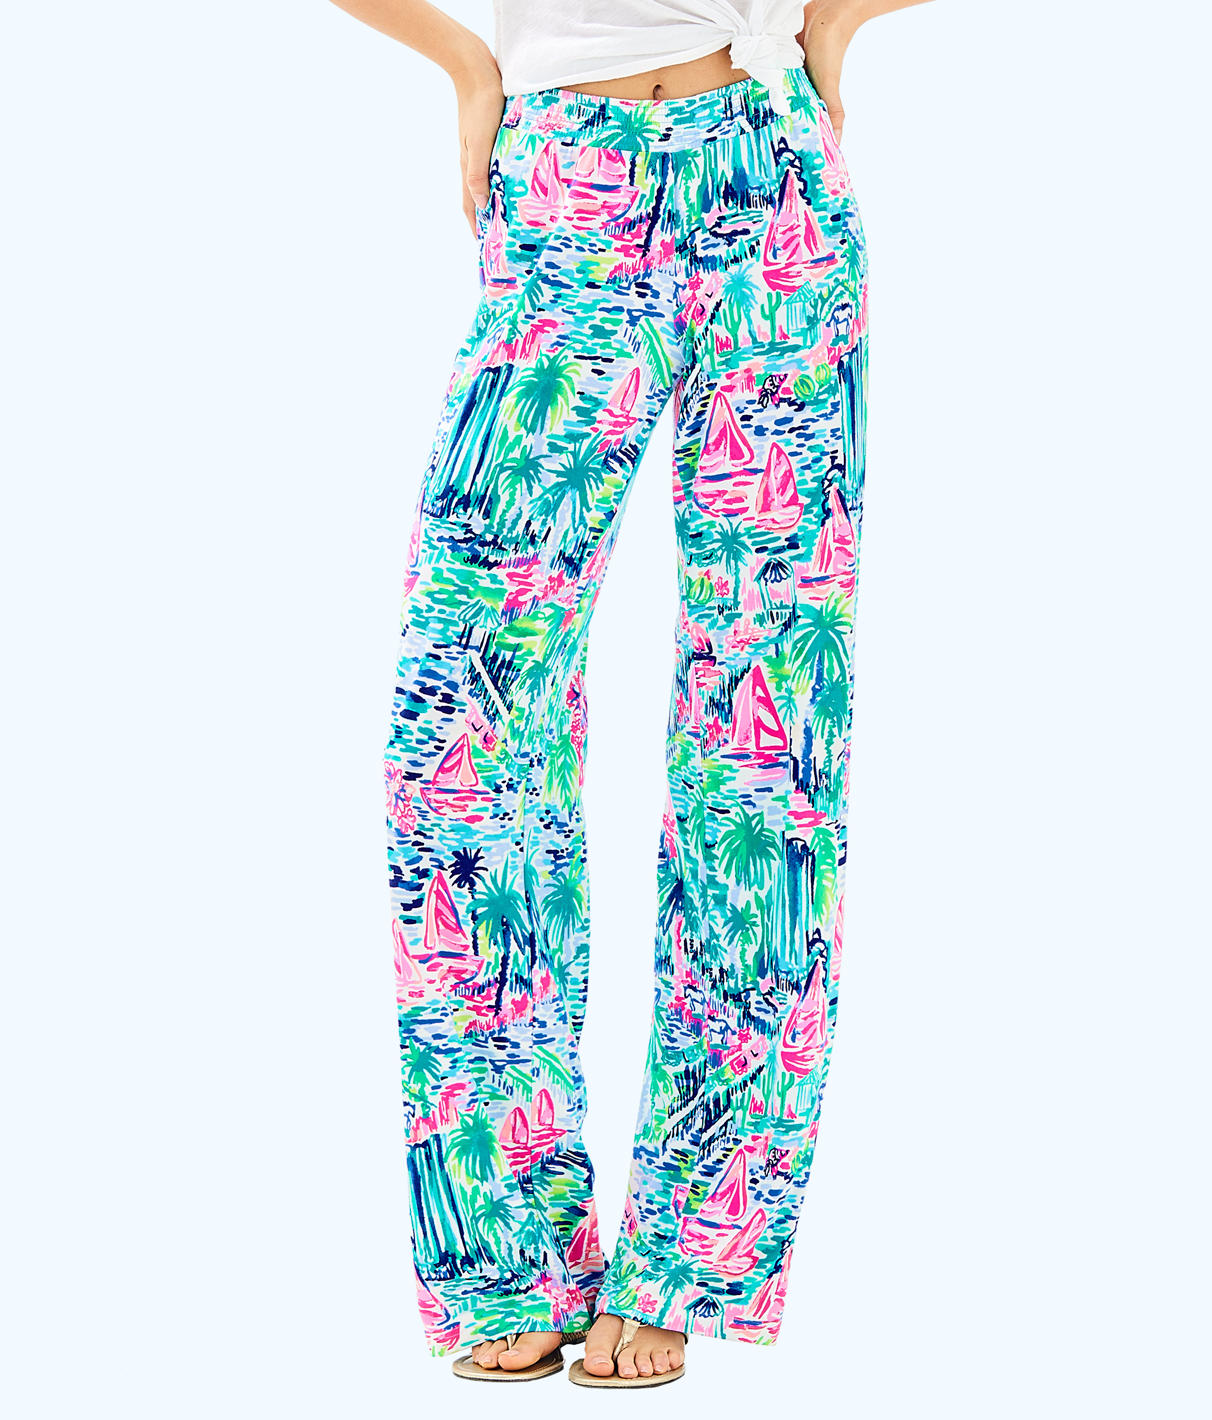 Lilly Pulitzer Lilly Pulitzer Womens 32